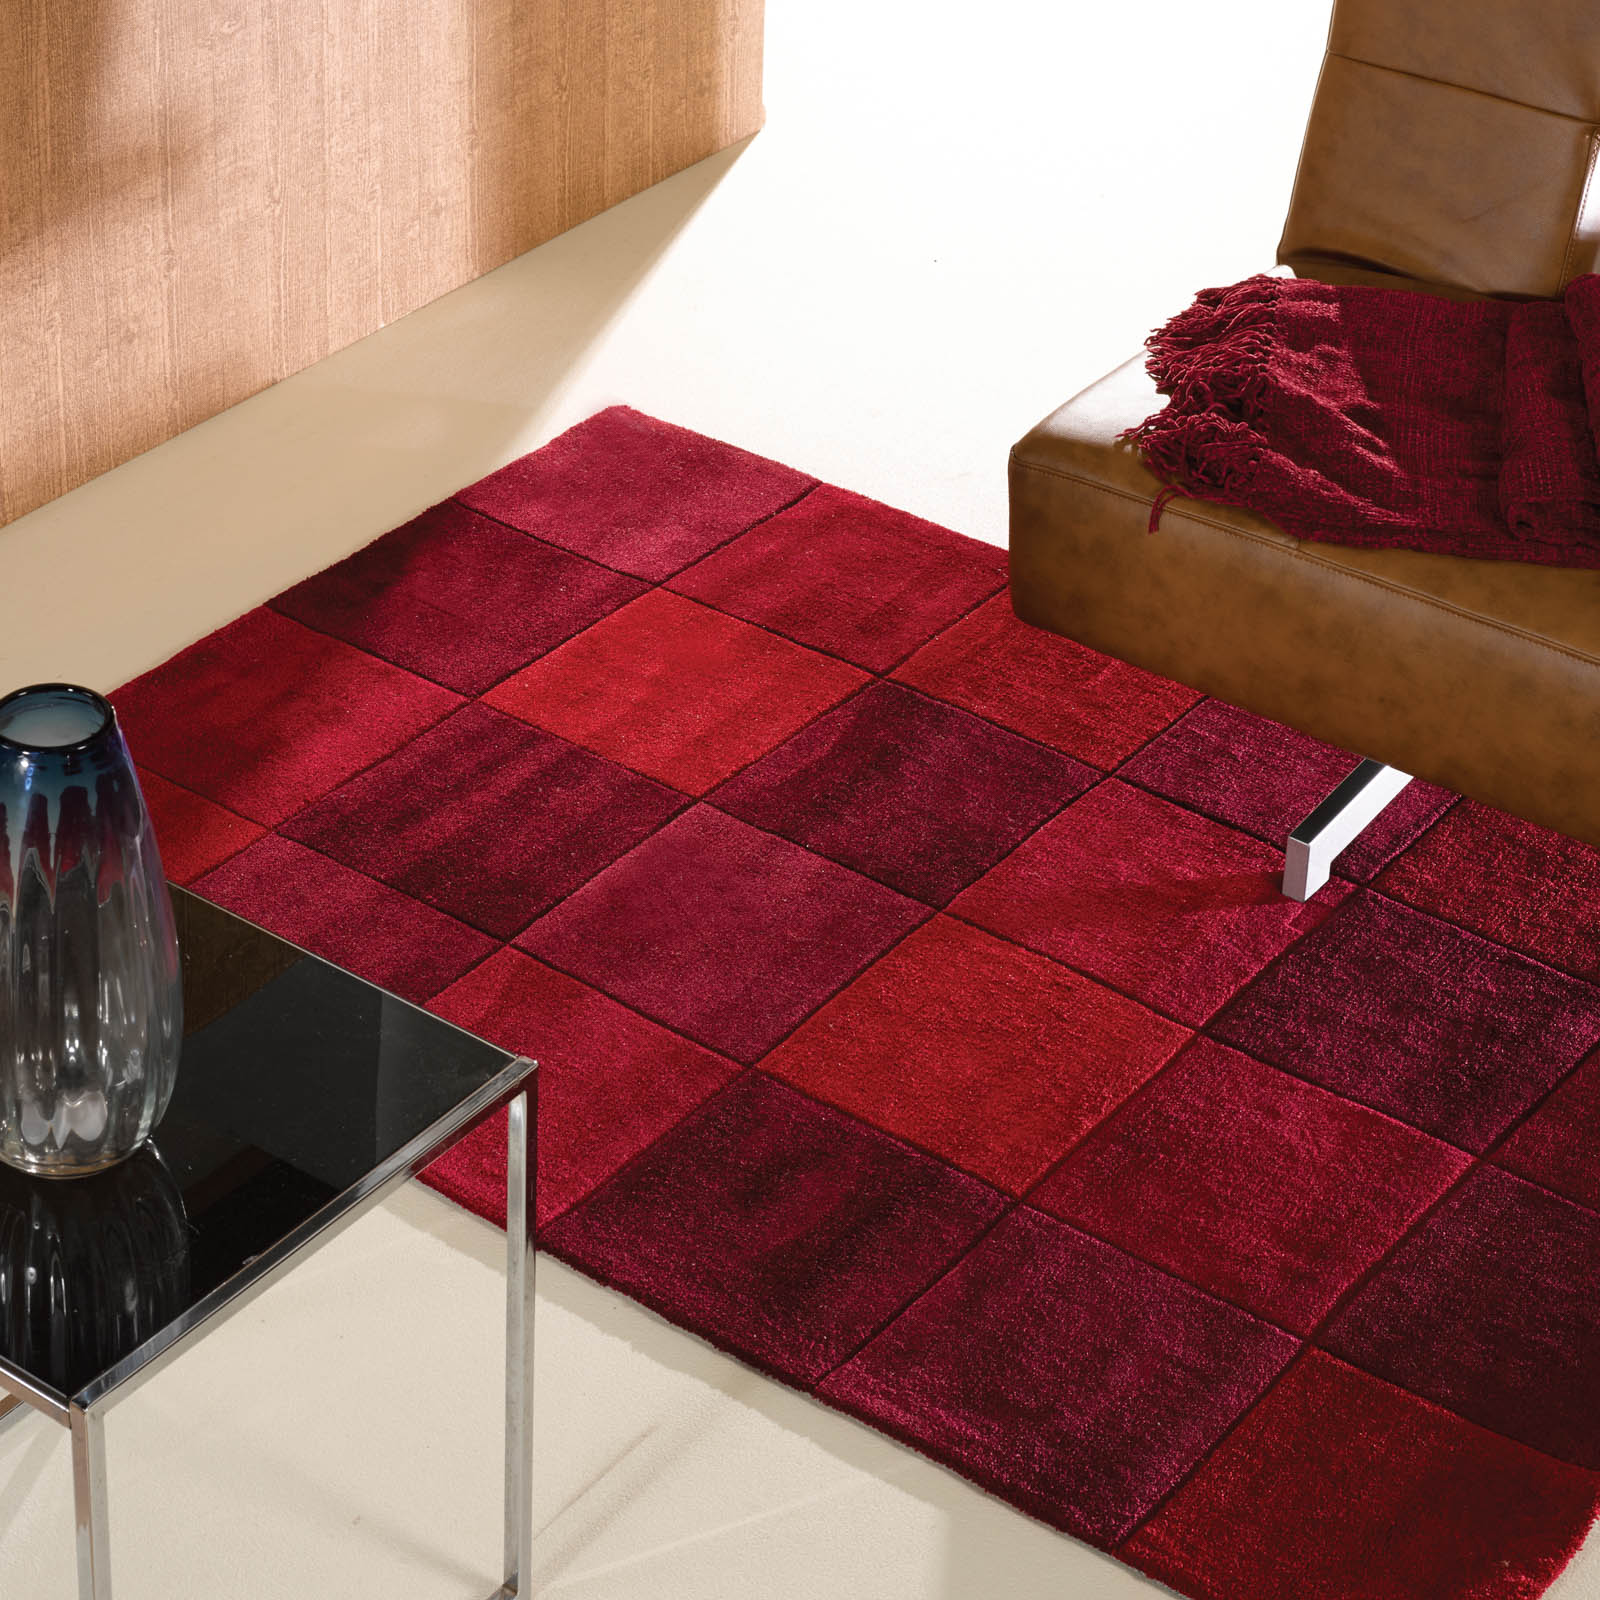 Inspire Squared rugs in Red